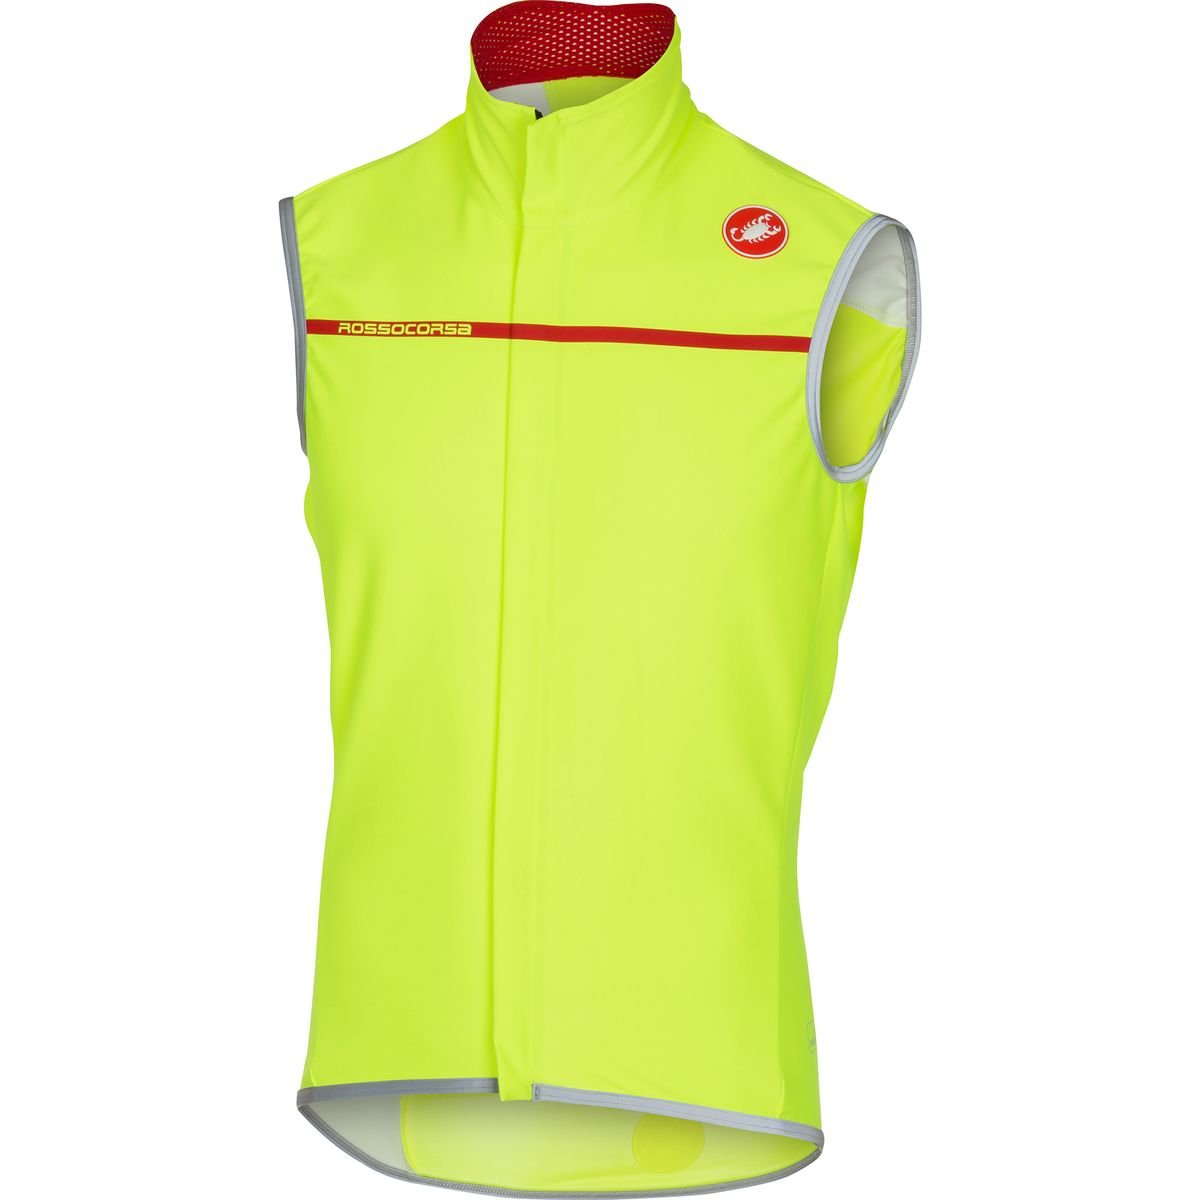 Castelli Perfetto Vest - Men's Yellow Fluo, XL by Castelli